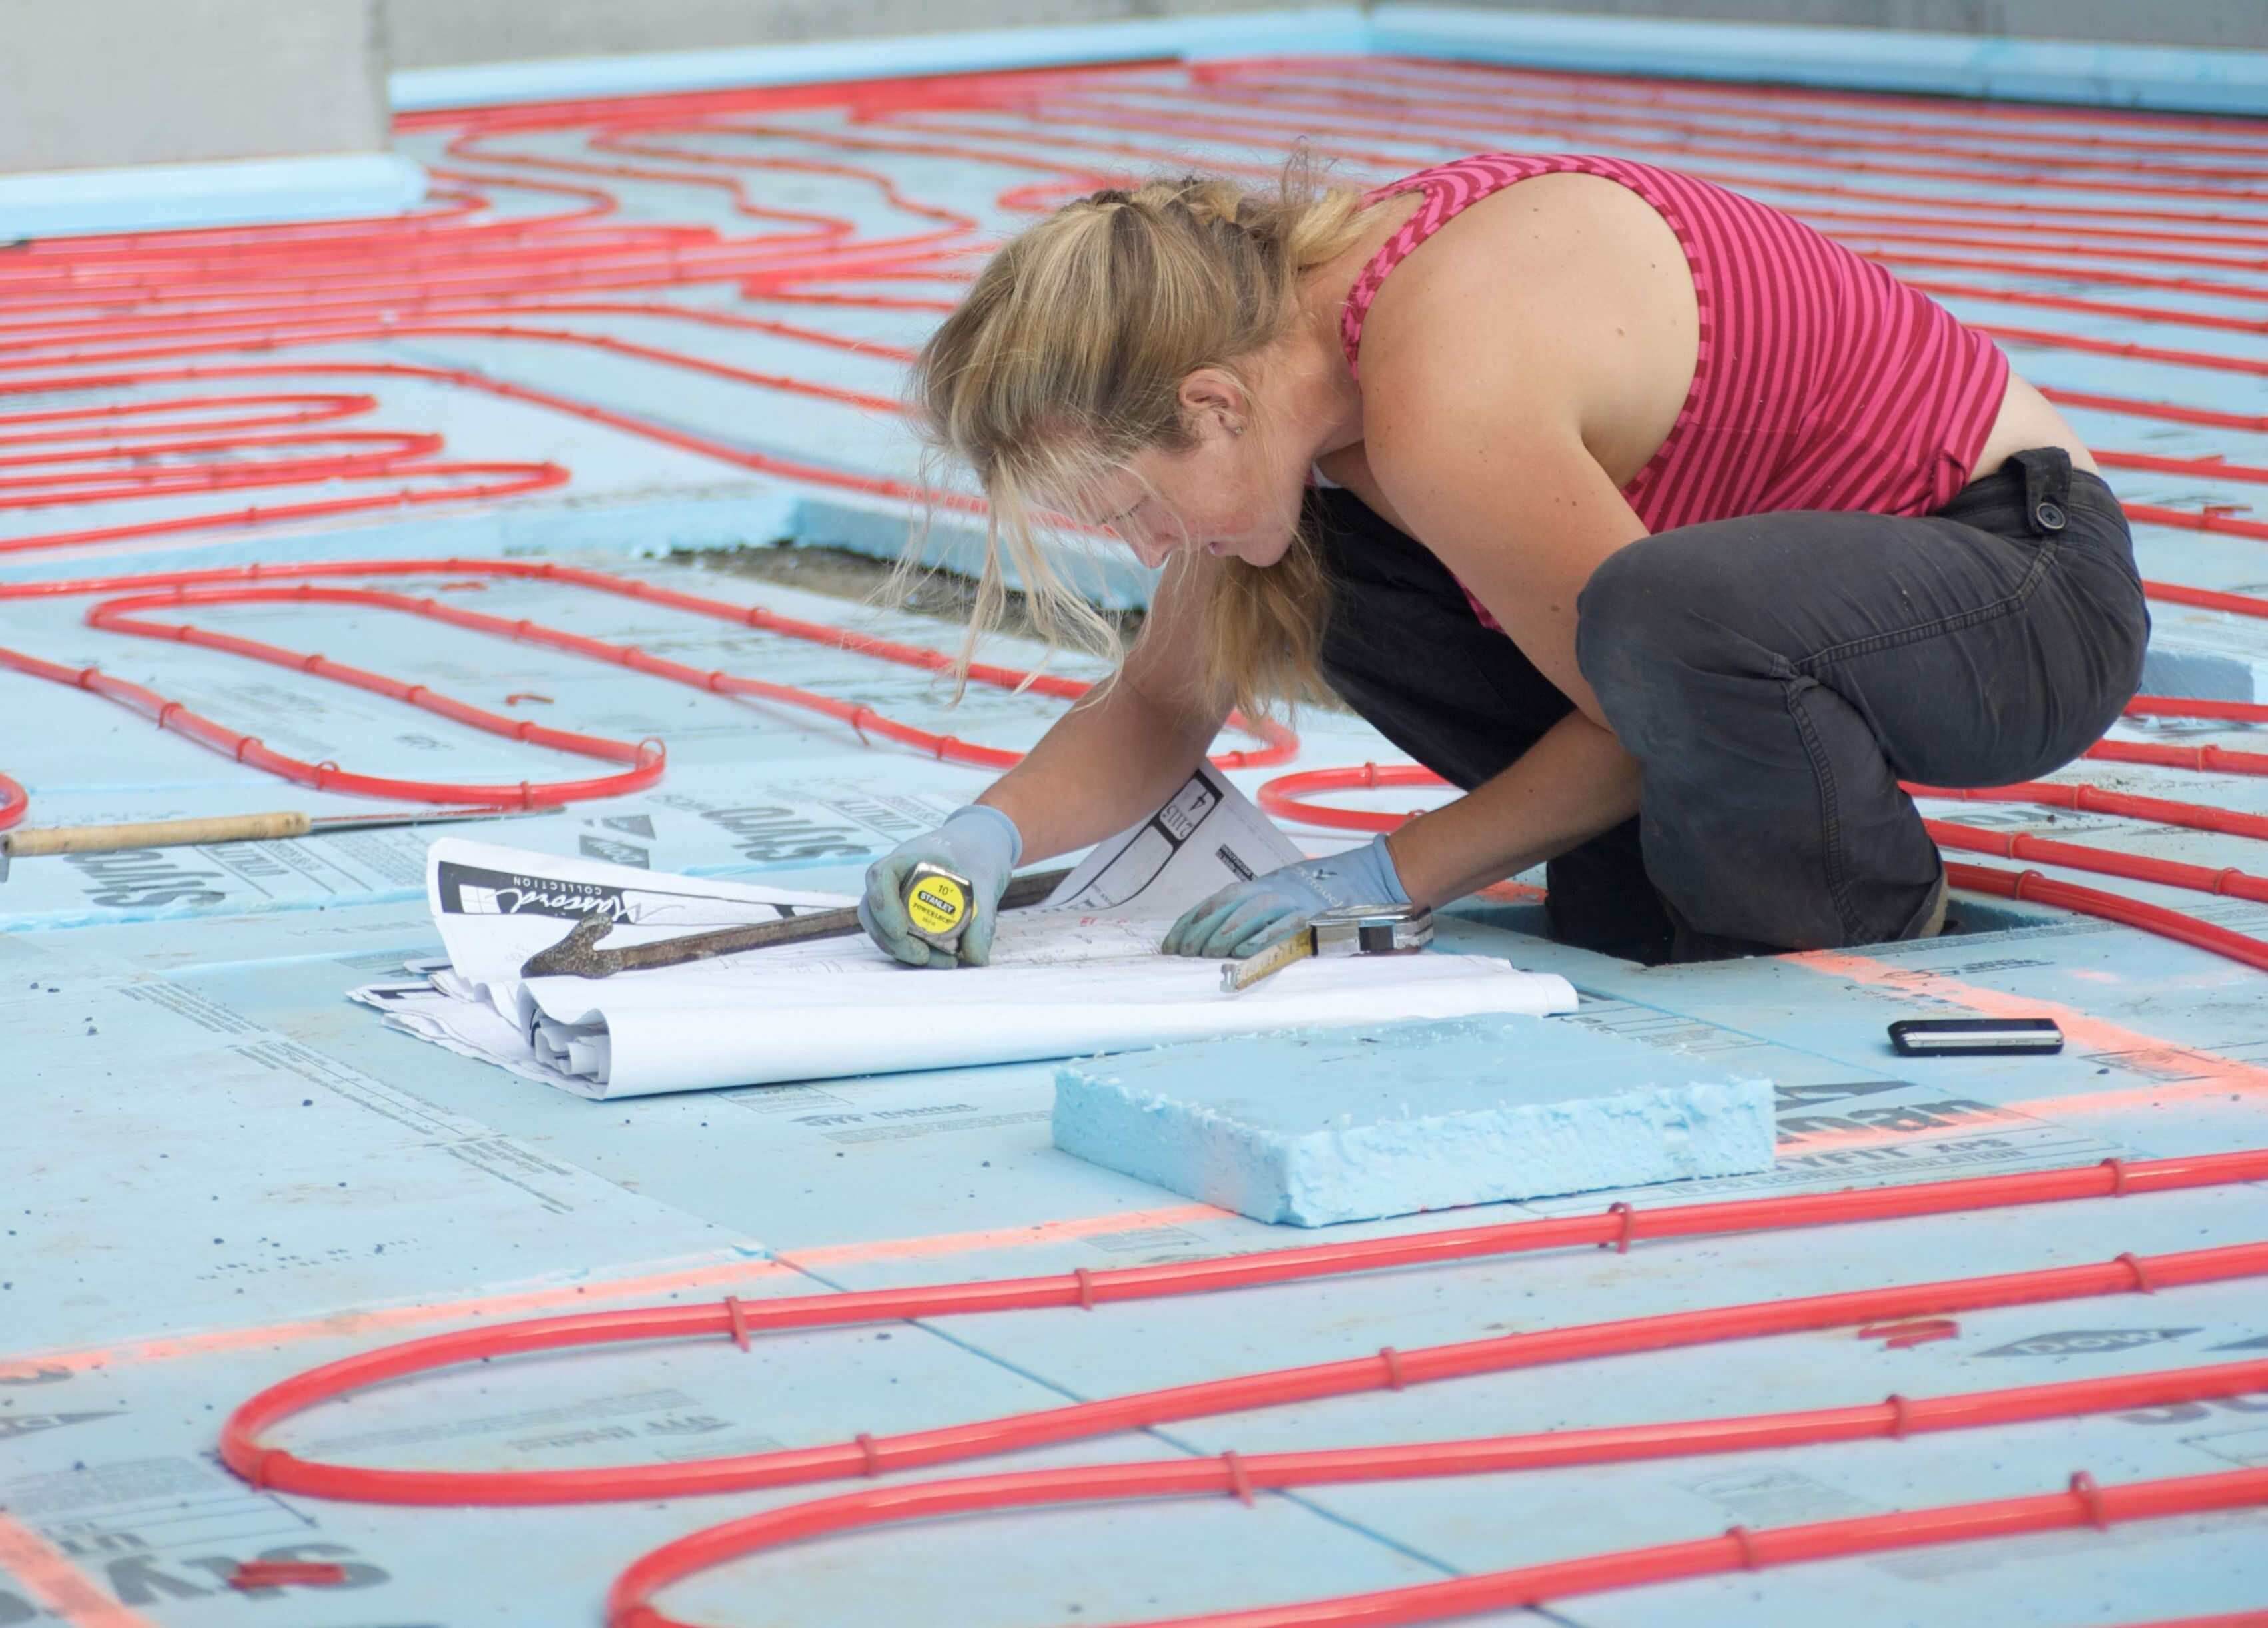 You can install radiant heating into most flooring units